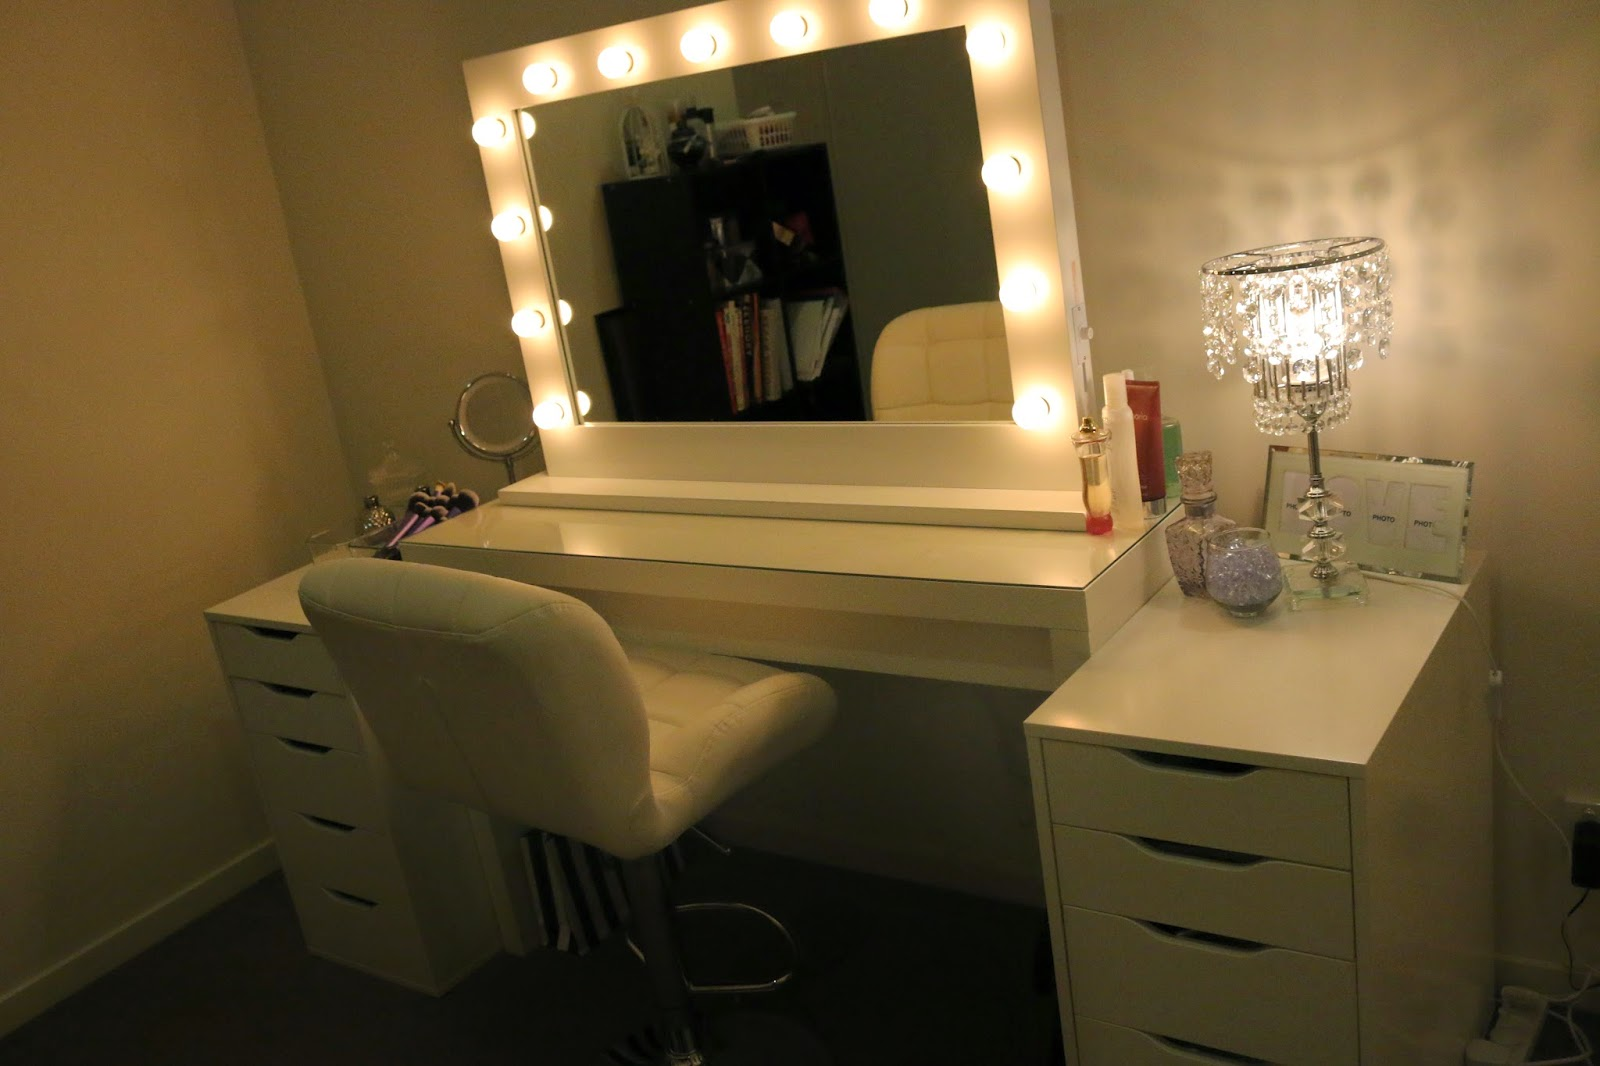 Attirant IKEA MAKEUP VANITY U0026 HOLLYWOOD LIGHTS!